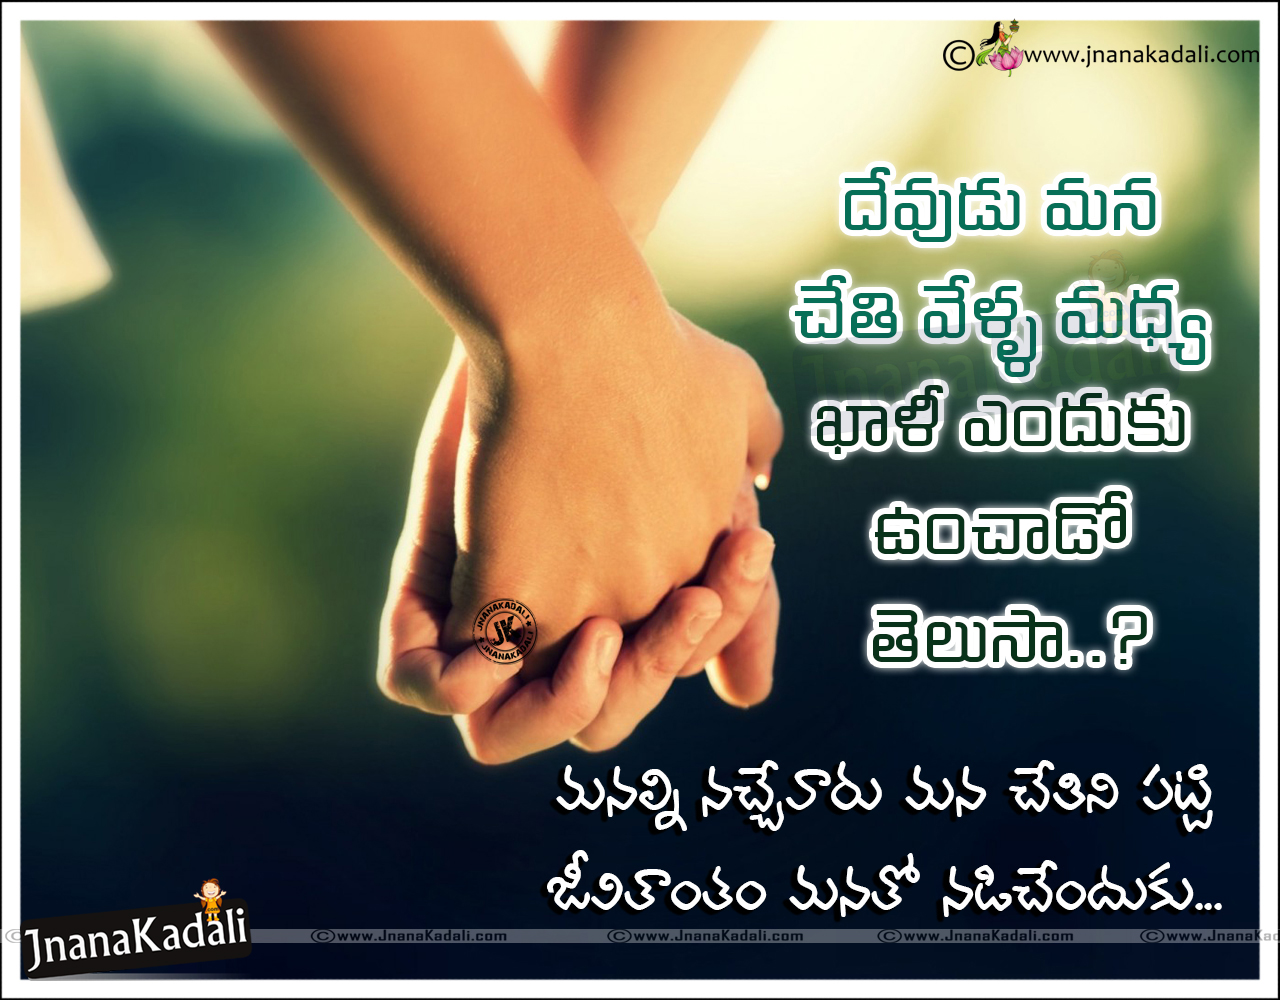 Value Of Life Quotes Telugu Inspirational Relationship Value Messages Quotes With Hd